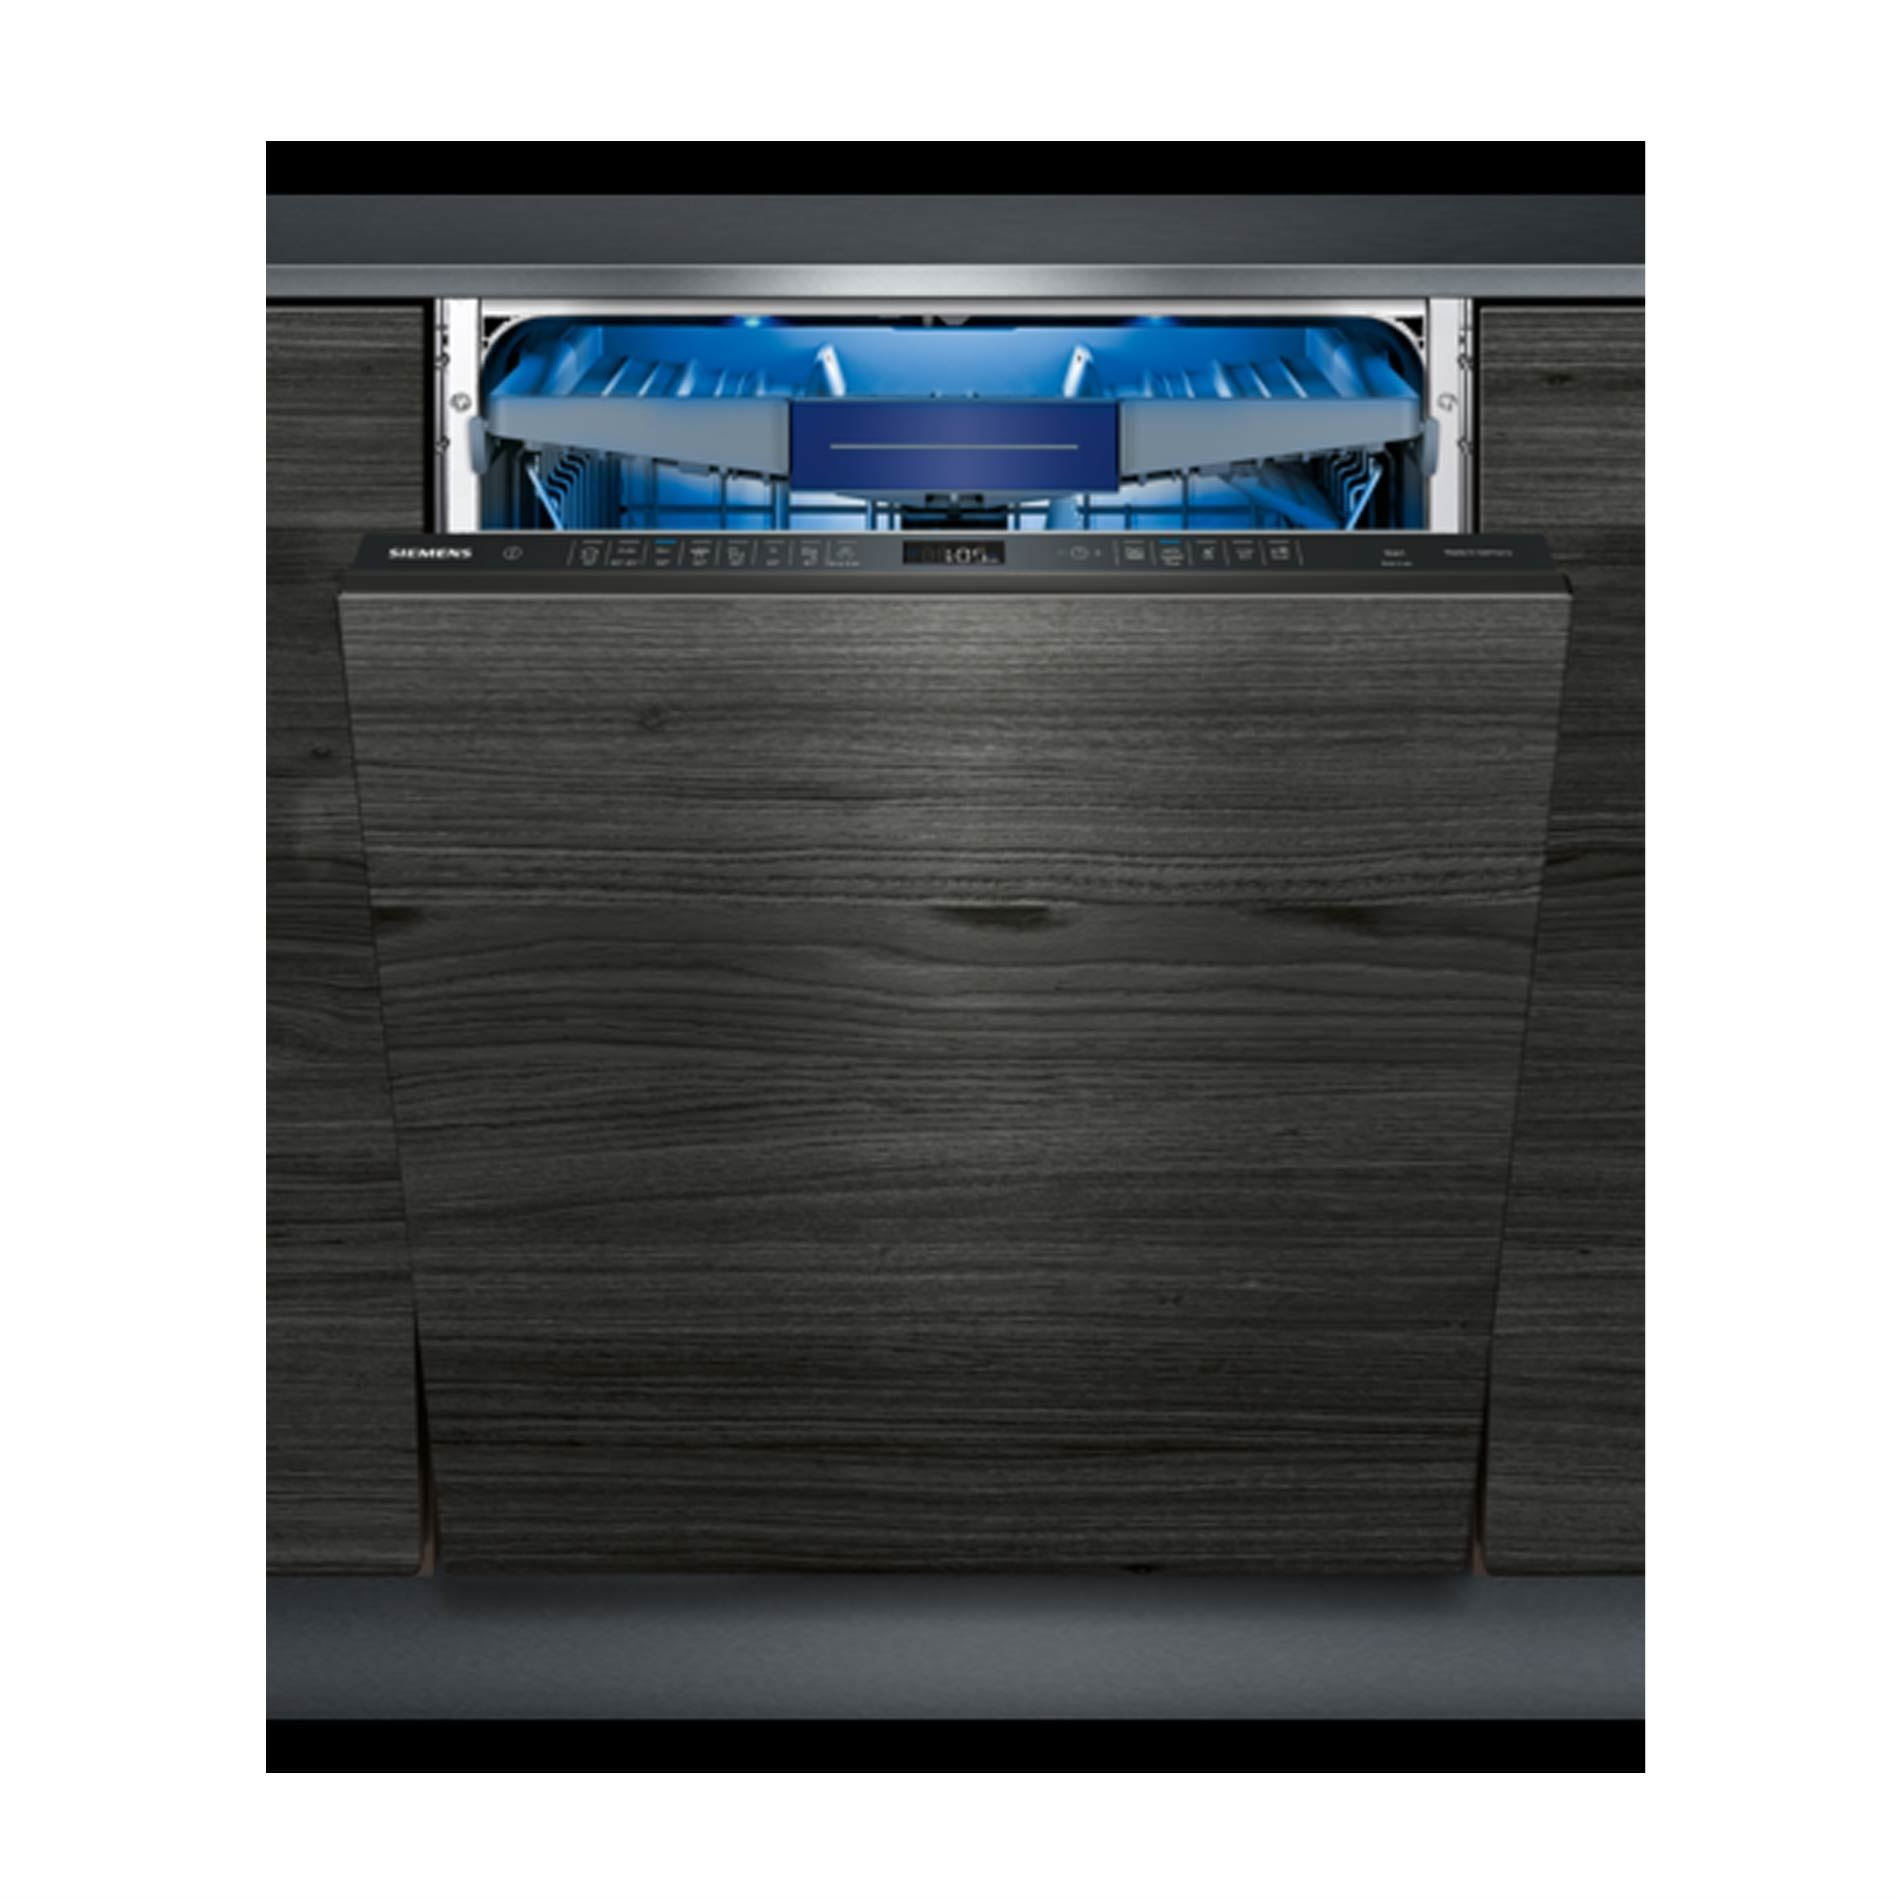 Picture of SN658D02MG Fully Integrated Dishwasher